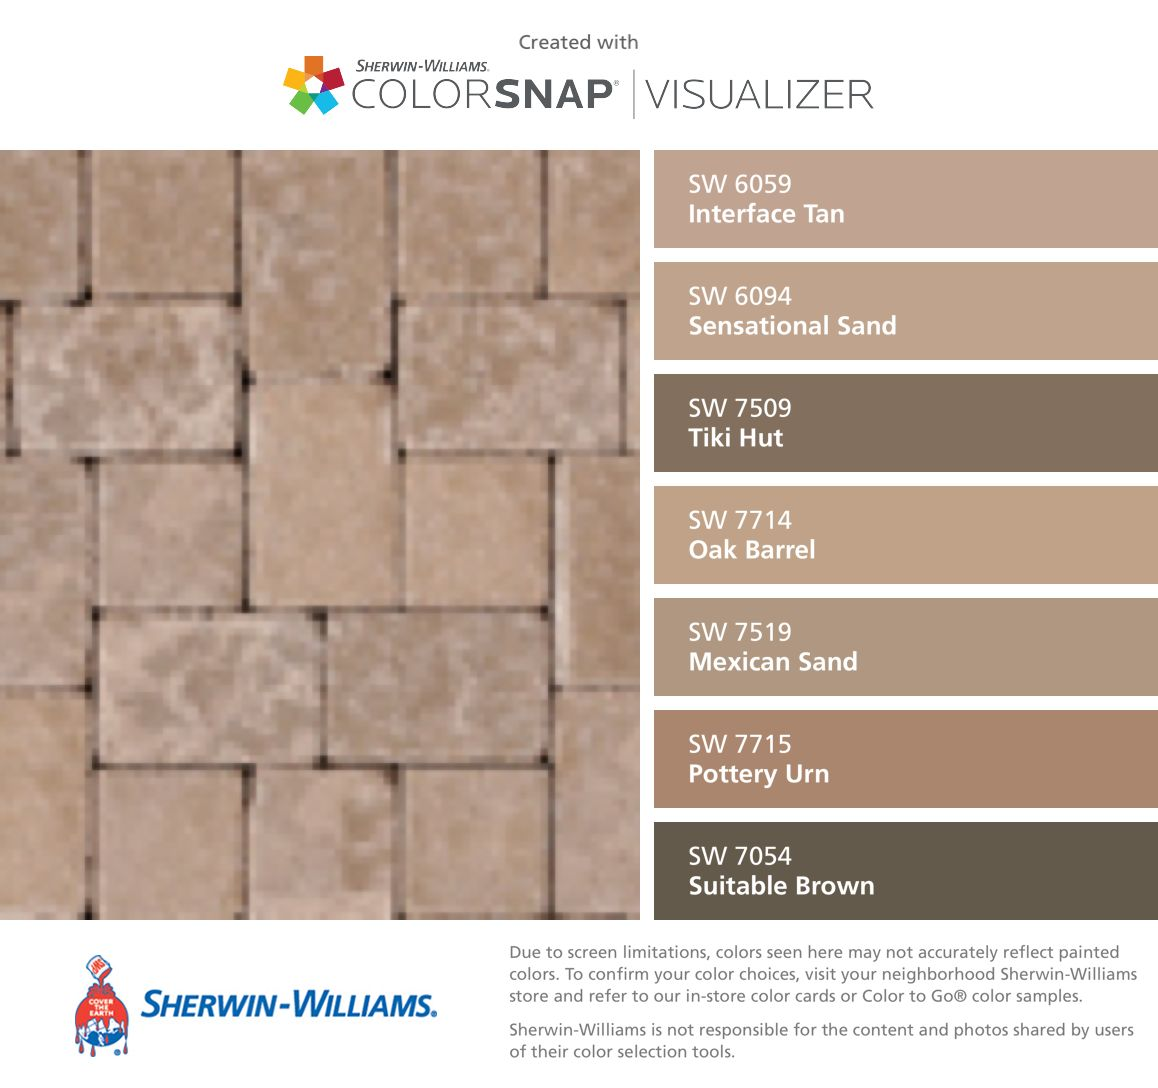 I found these colors with colorsnap visualizer for iphone by sherwin williams interface tan sw 6059 sensational sand sw 6094 tiki hut sw 7509